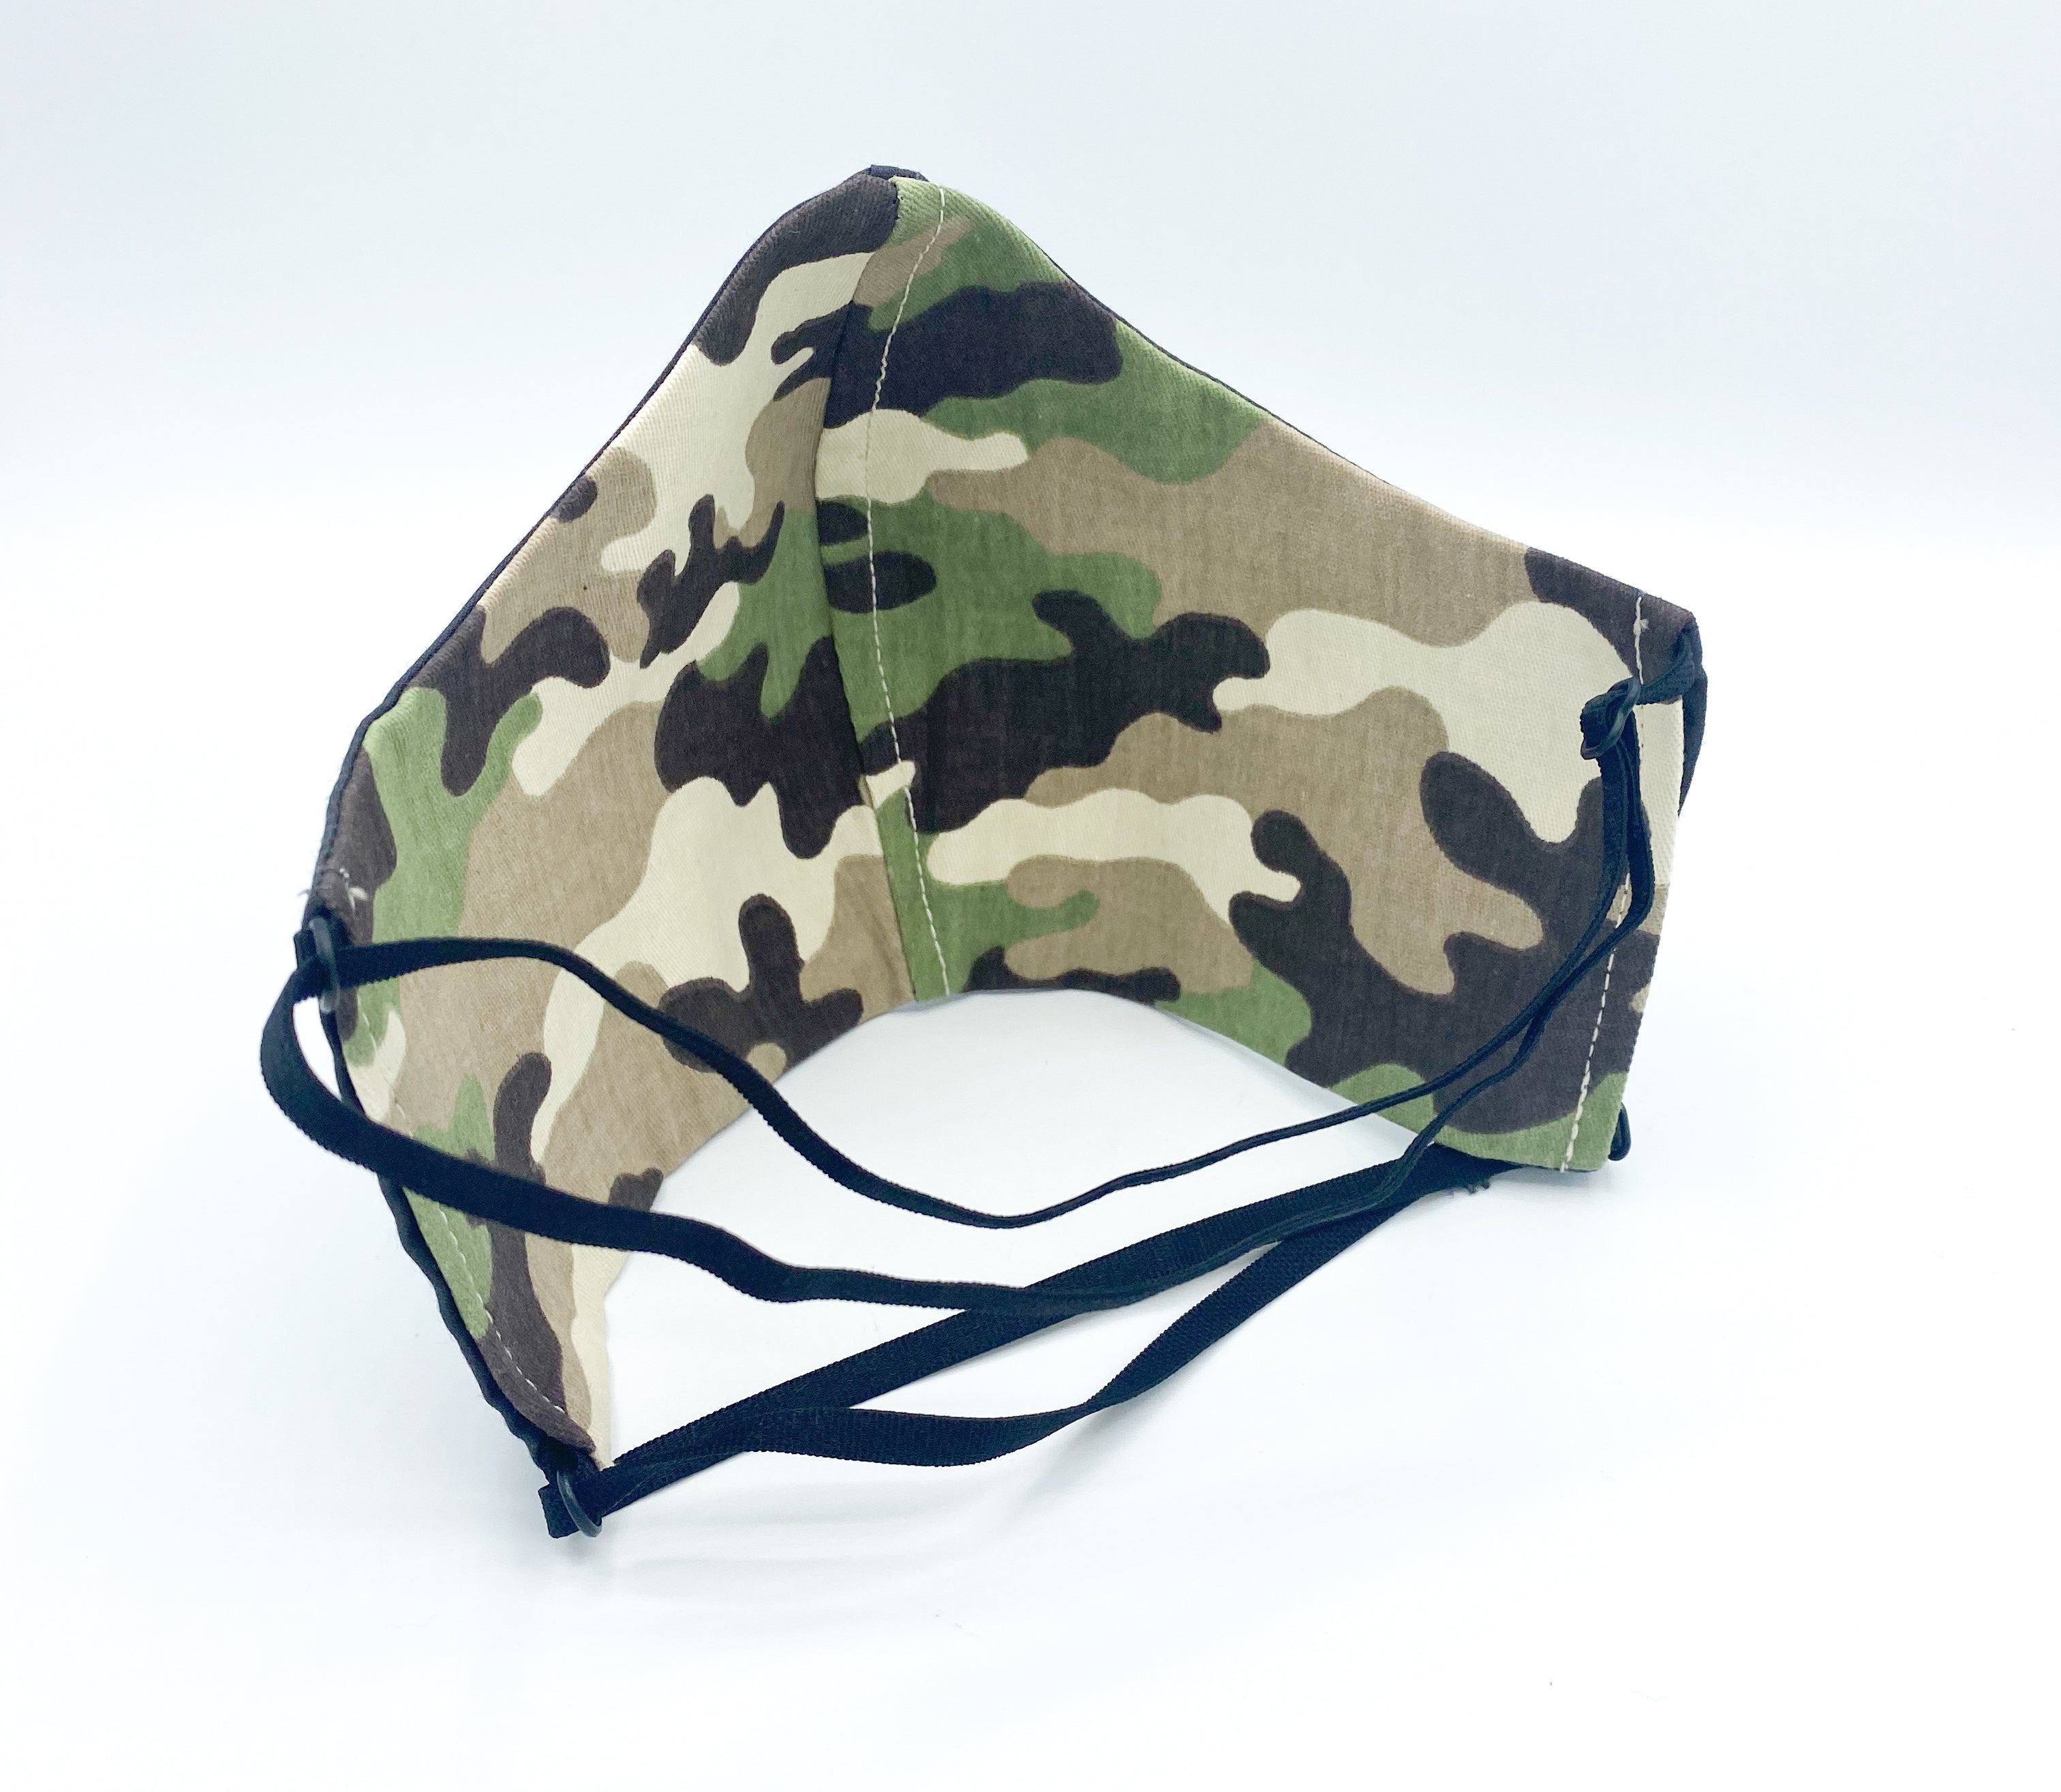 Reversible Camo - 2 Masks for the Price of 1! Camo & Dark Gray